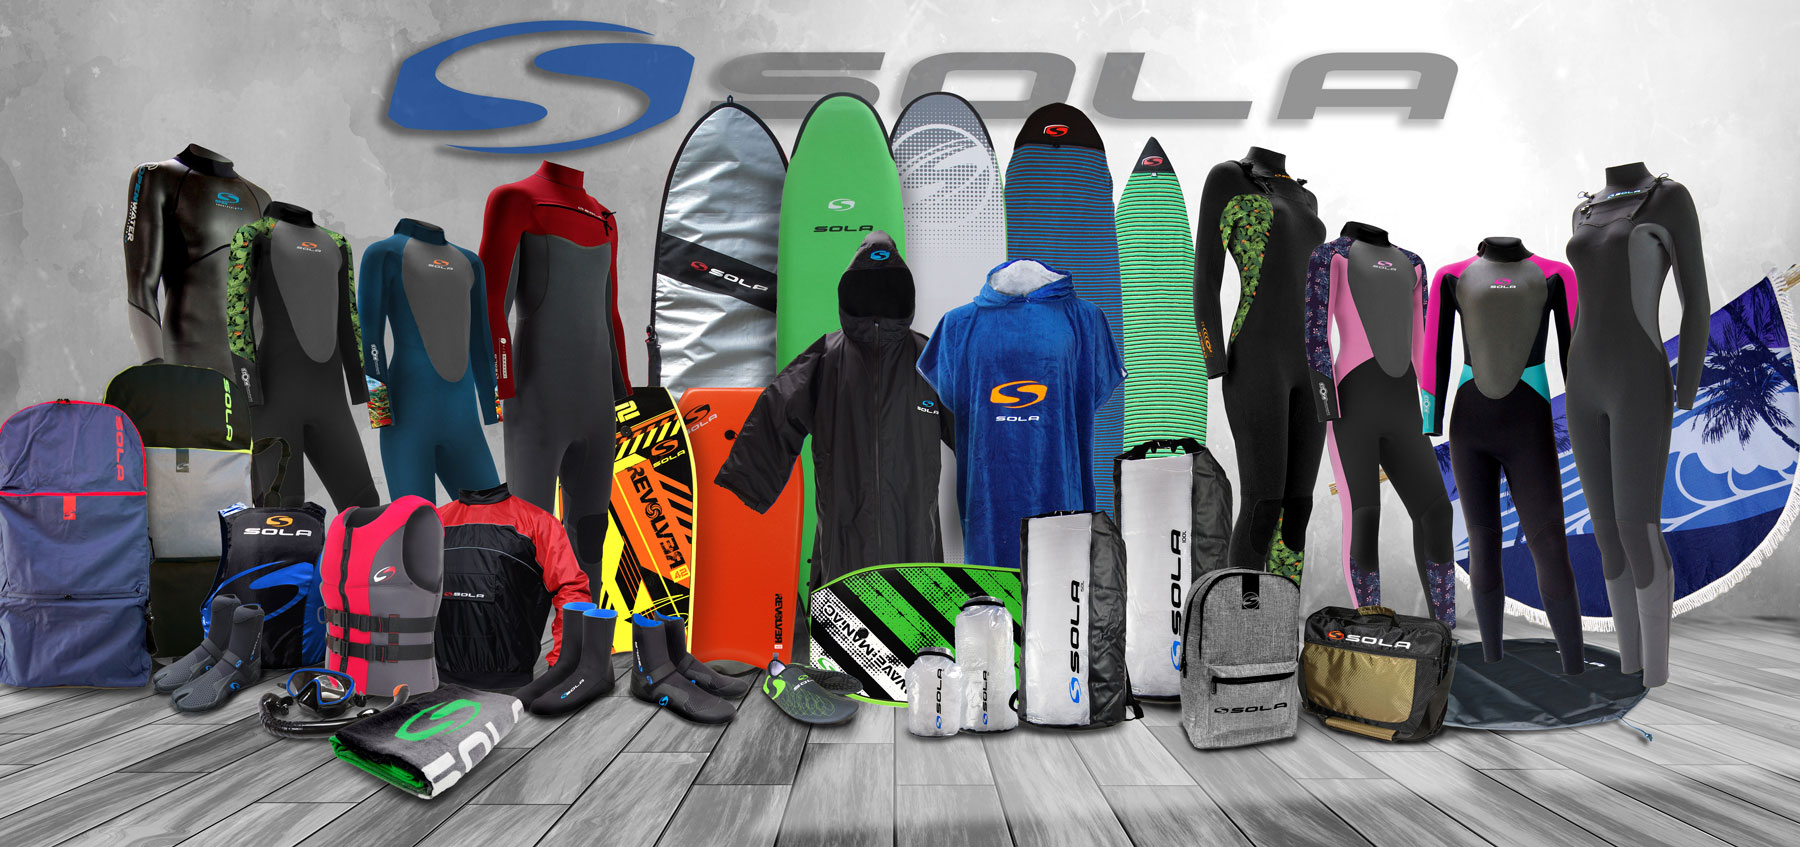 Sola Wetsuit and Watersports Products 2020